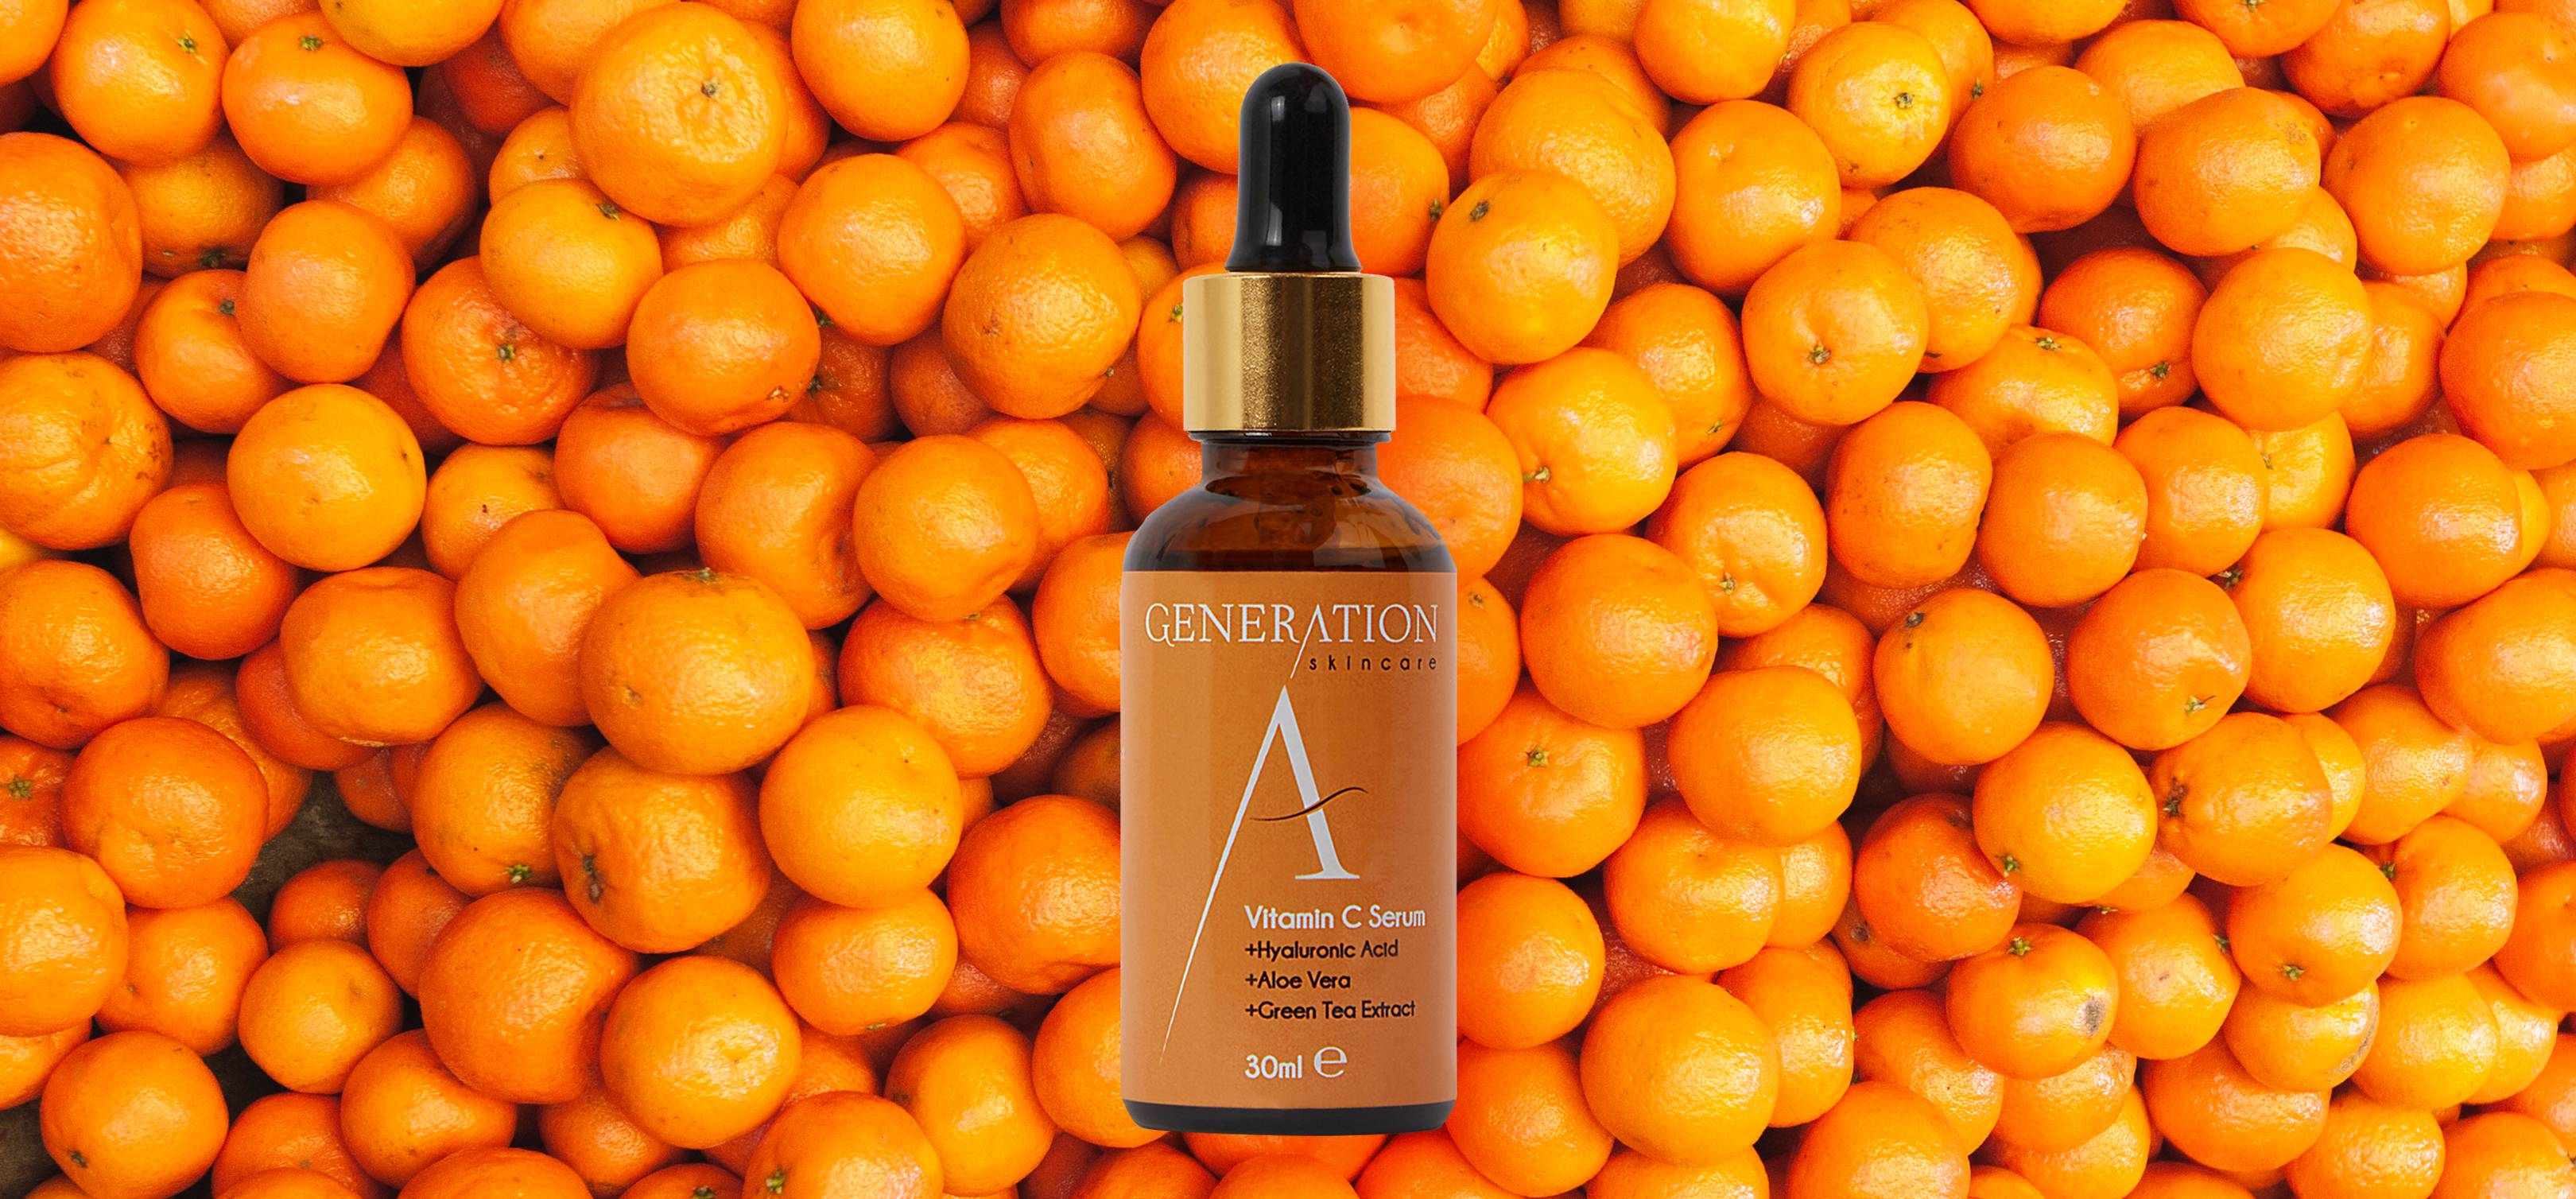 This £13.95 Vitamin C serum has so many 5-star reviews (and you've probably never heard of it)